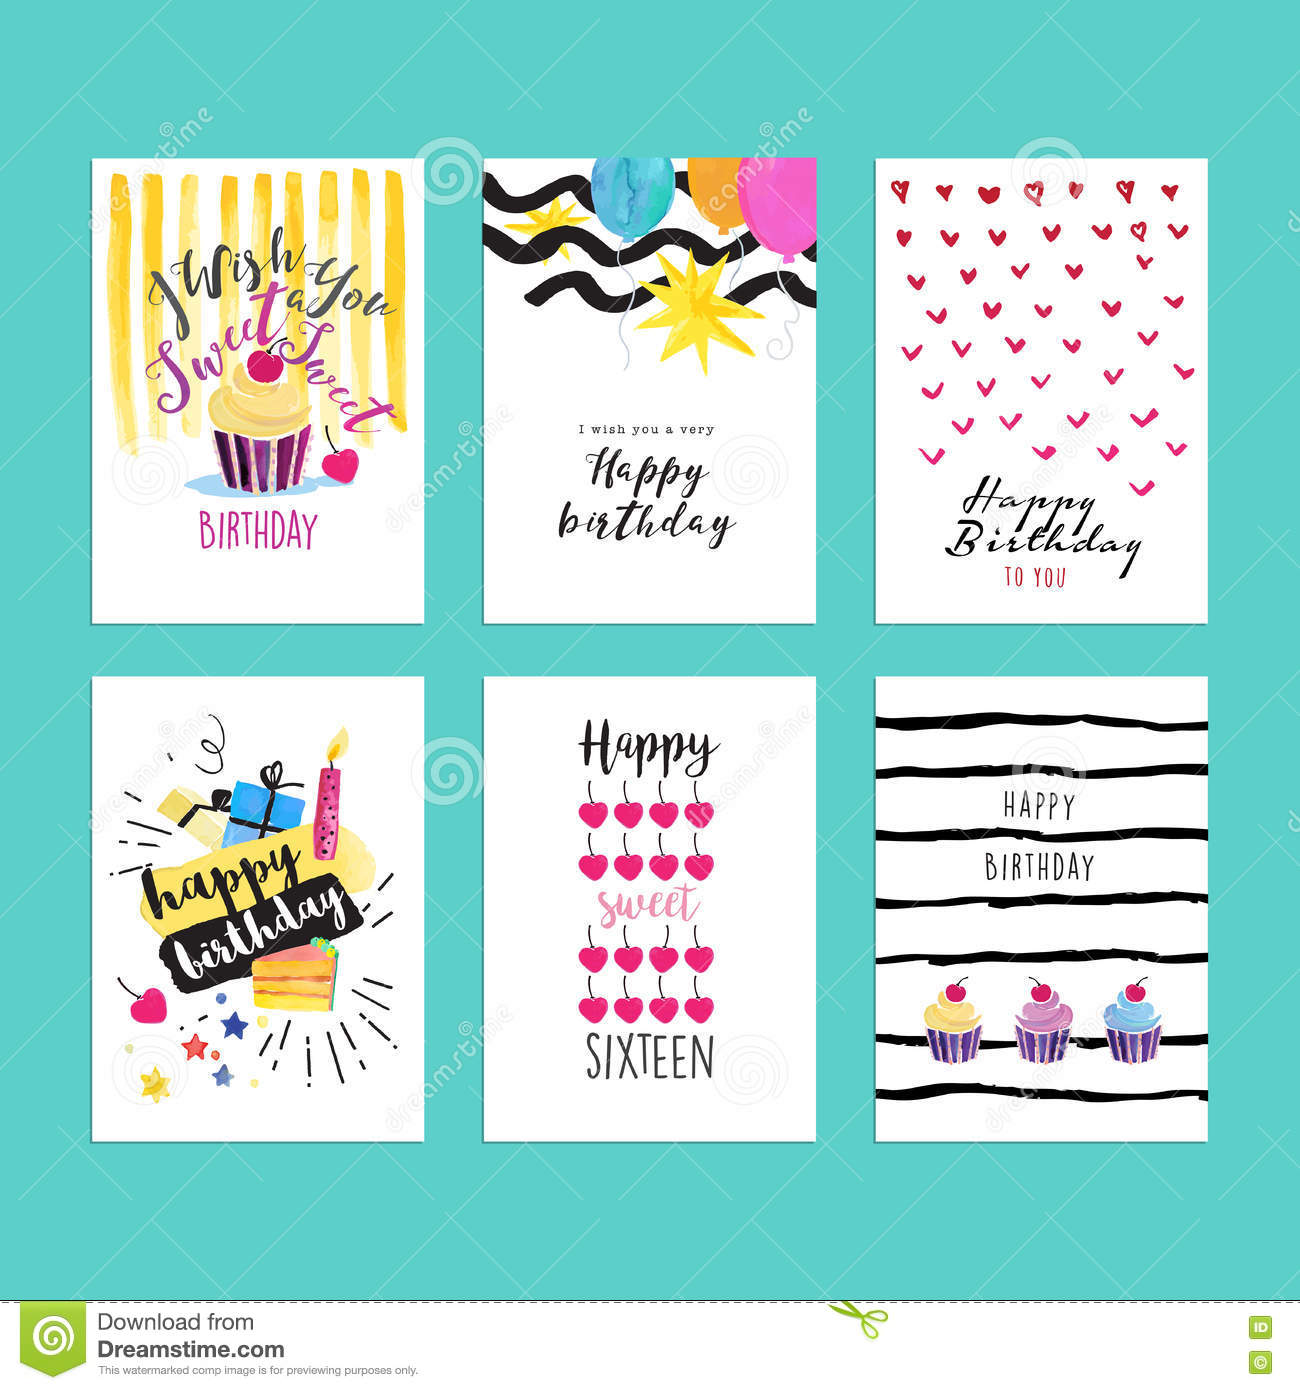 Set Of Hand Drawn Watercolor Illustrations For Birthday Greeting Cards Download Preview